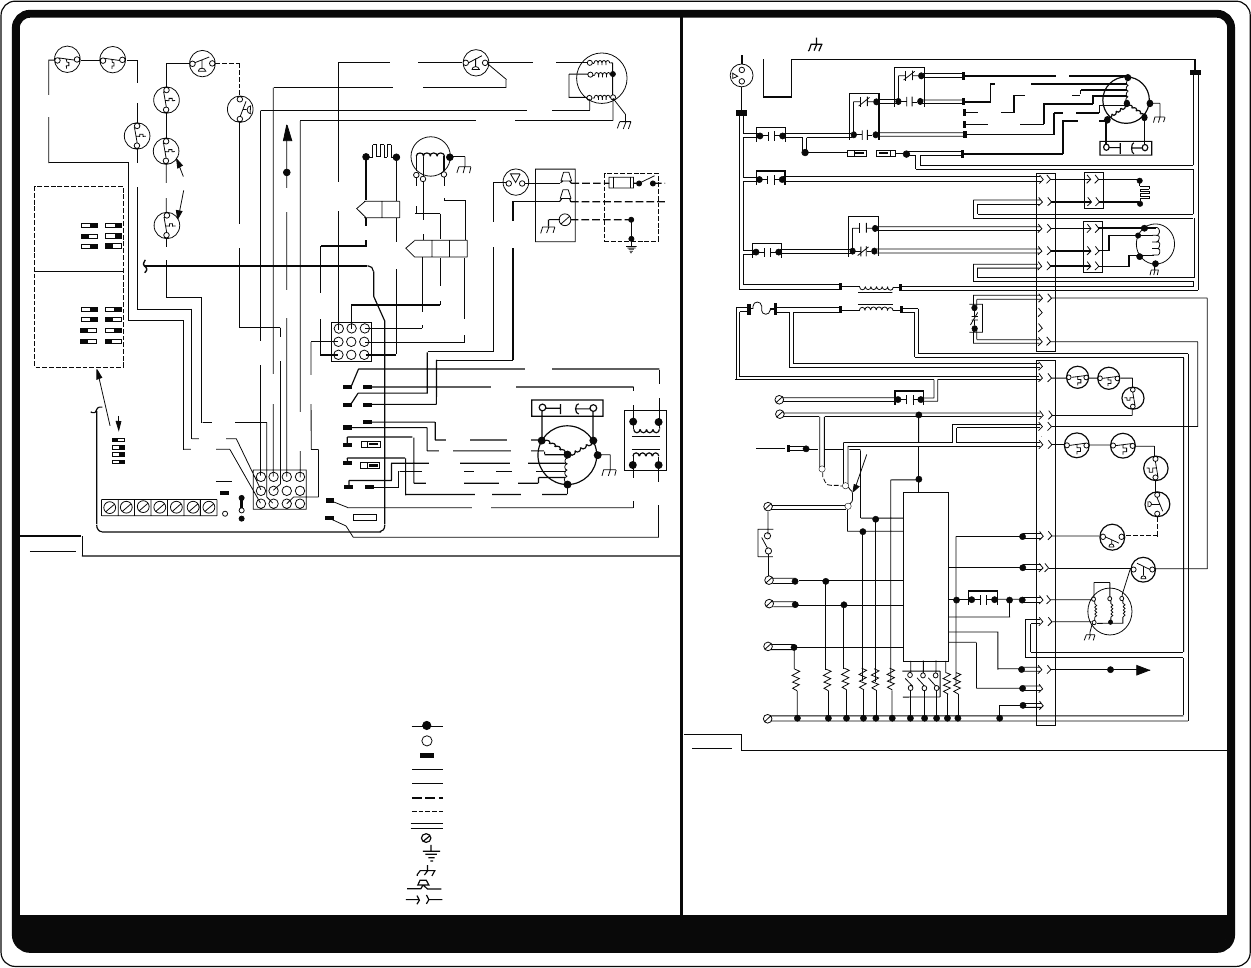 c2b73d22 c45f 43df a574 b6e707ea0cc7 bg8 power flame wiring diagram power flame burners wiring diagrams honeywell pressure switch wiring diagram at cos-gaming.co